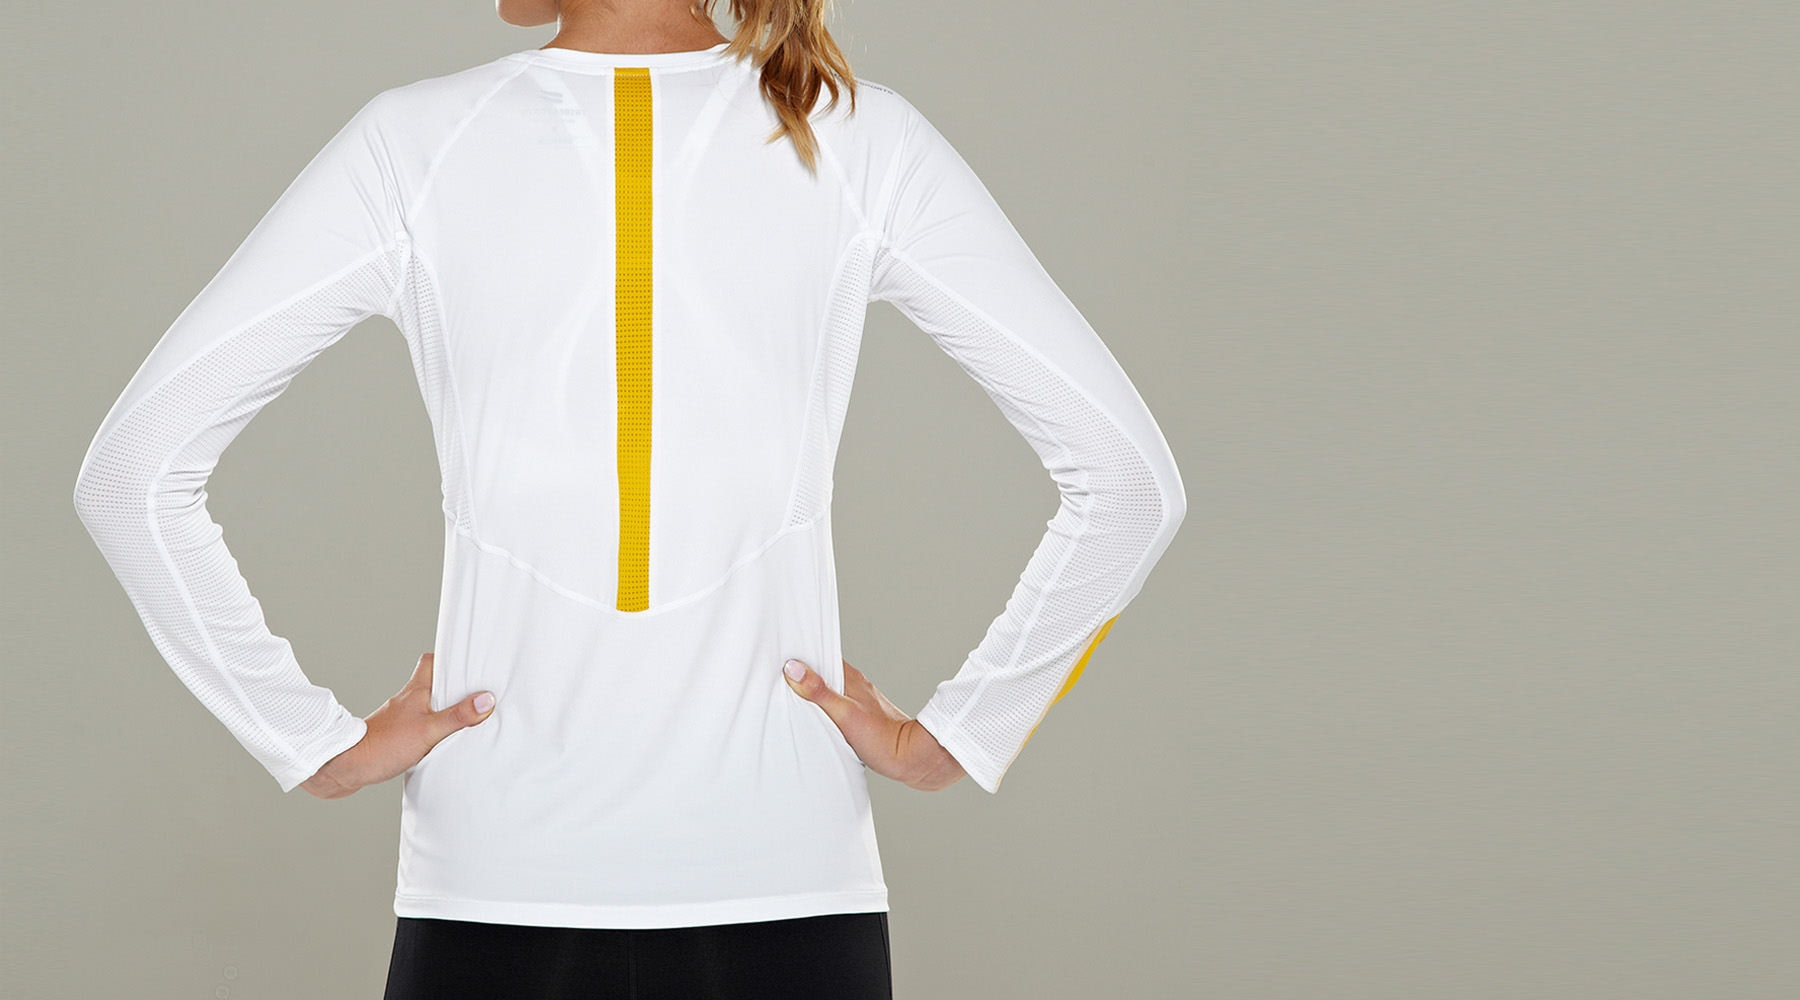 Tribesports Core Women's Long Sleeve Top White  6